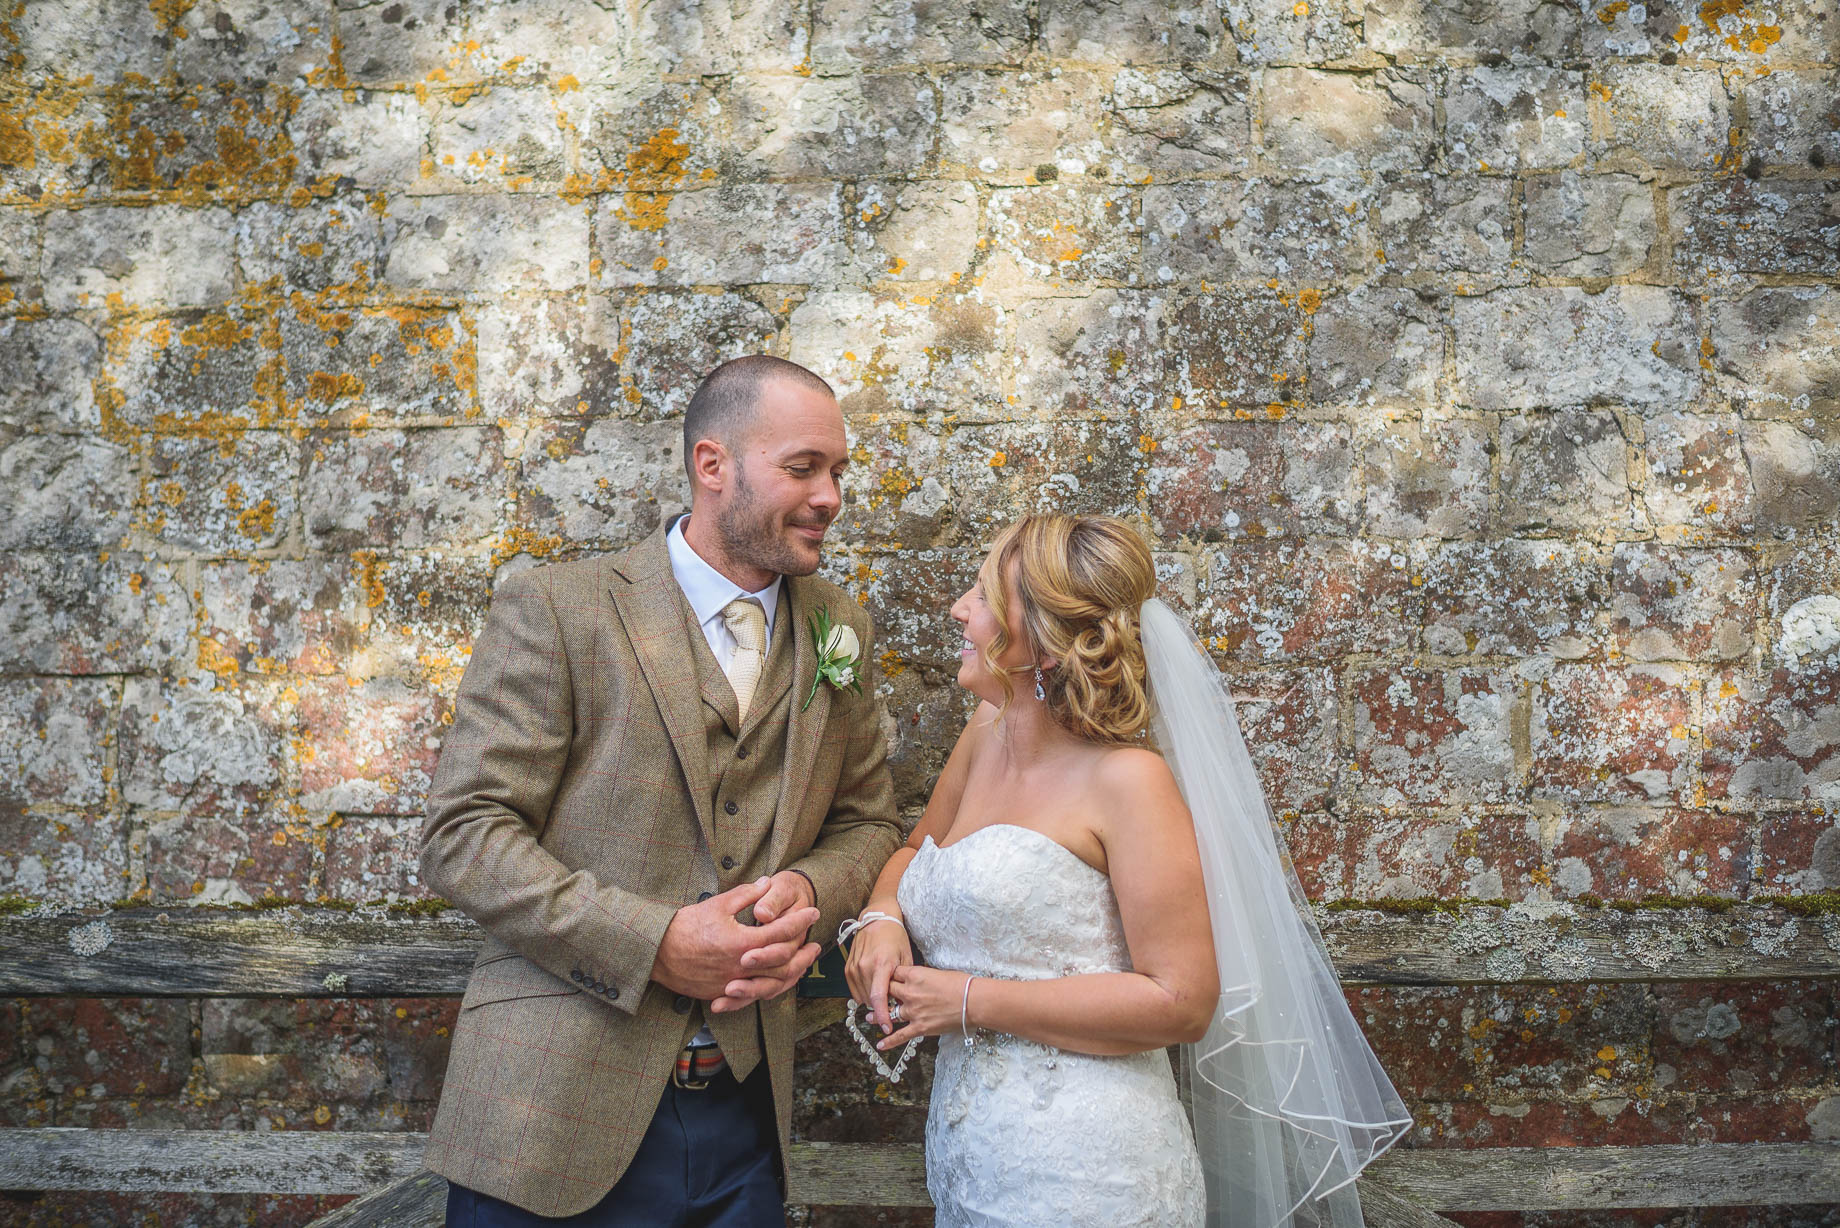 Bury Court Barn wedding photography - Guy Collier - Kate and Russ (106 of 187)